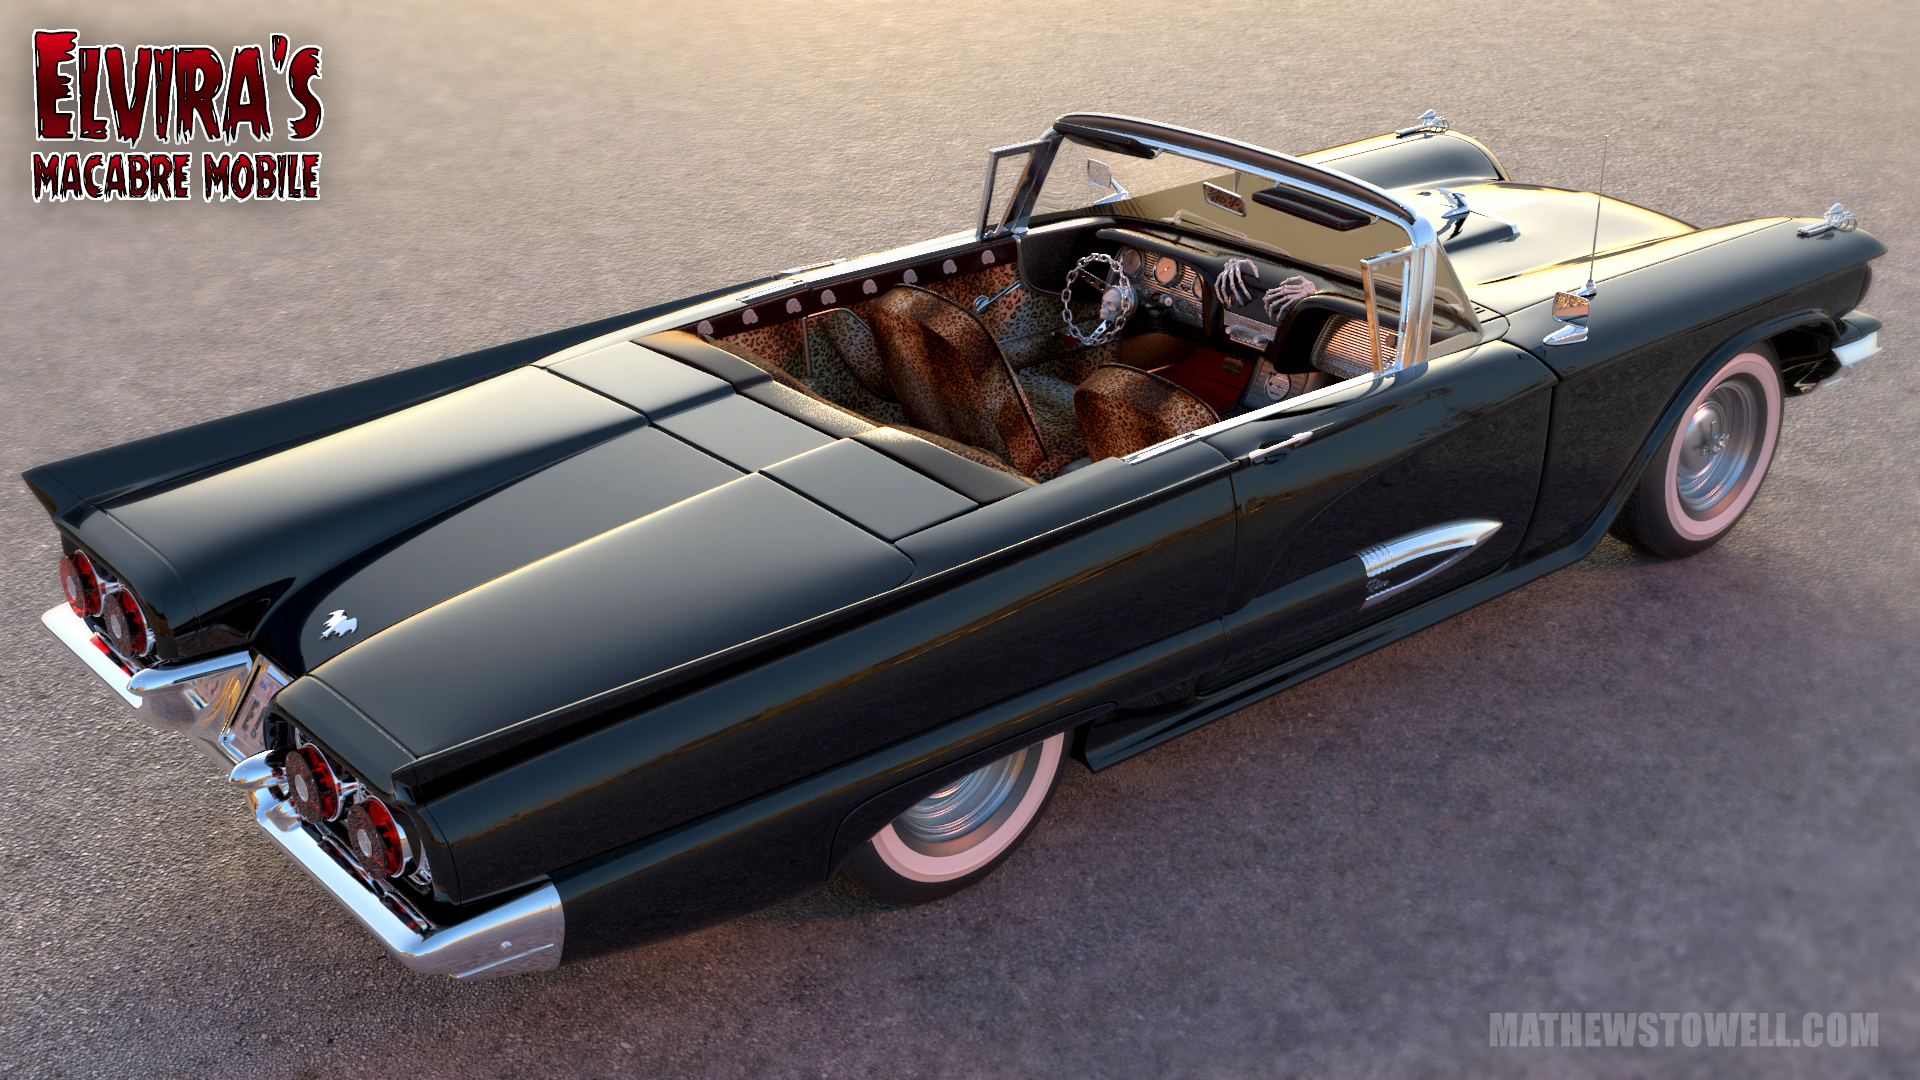 Elviras_car_side_3ds_max_vray